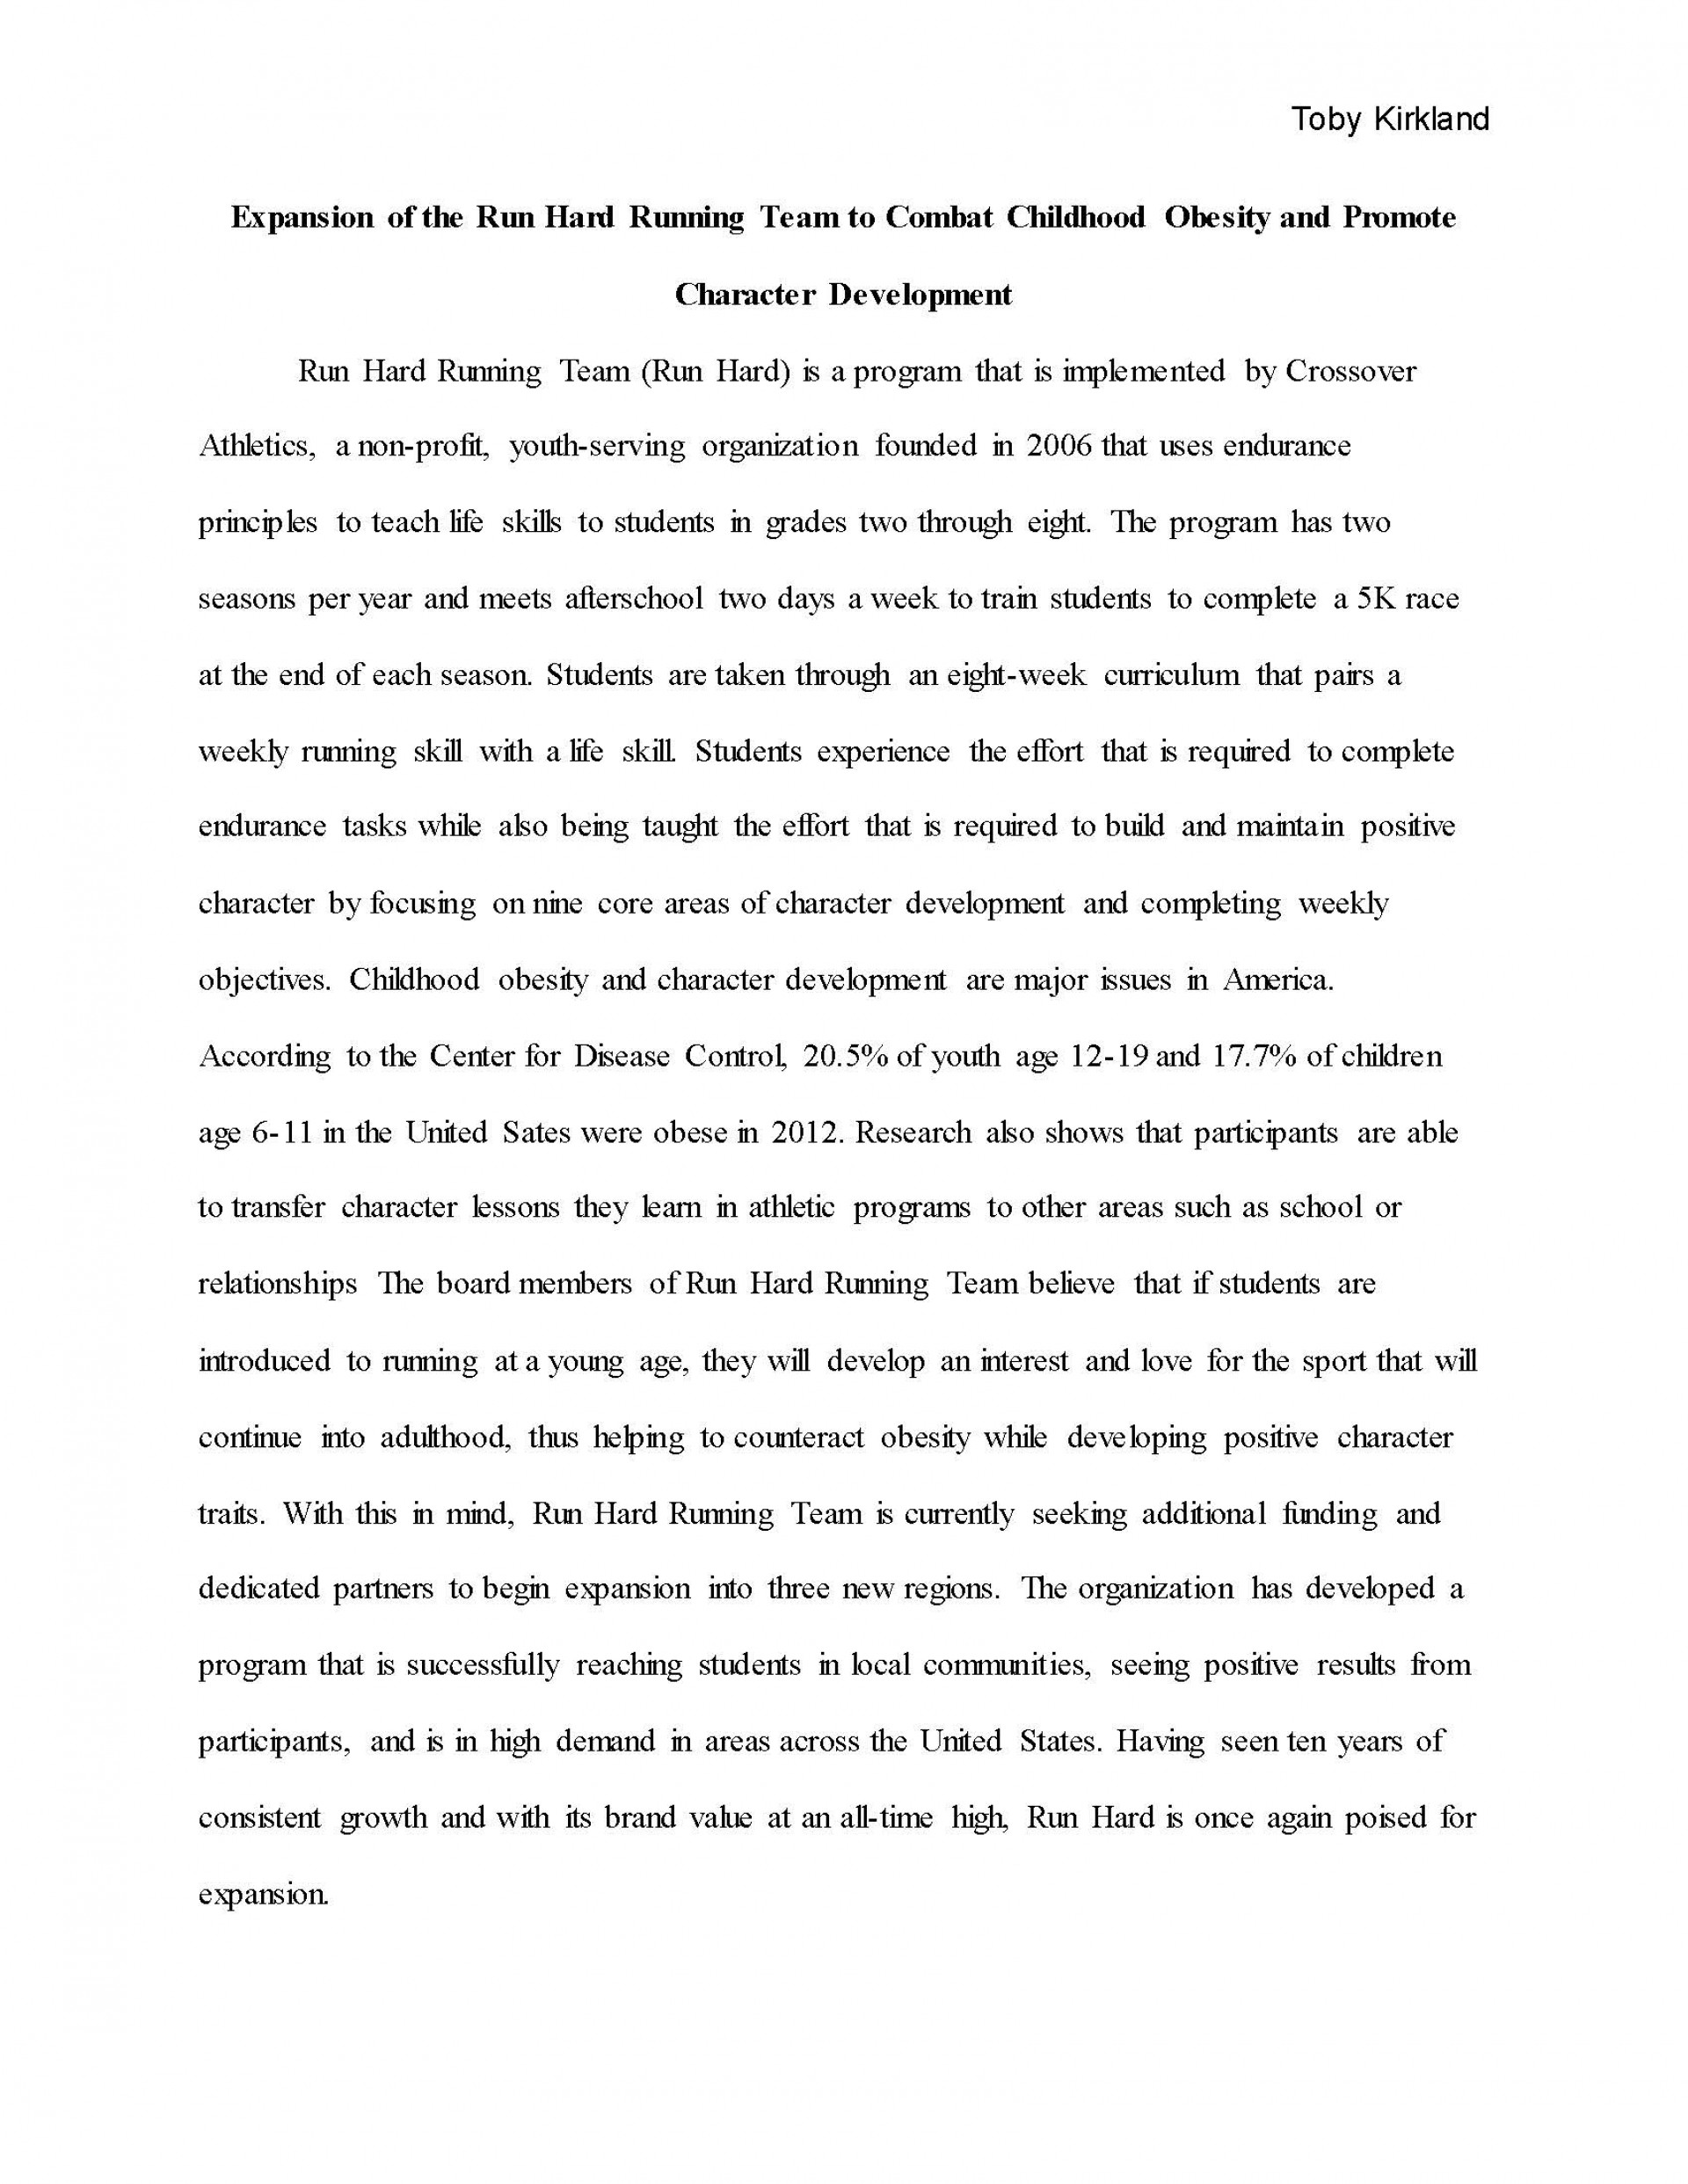 002 Research Paper Childhood Obesity Essay Sample Barca Fontanacountryinn Com Child Marvelous Argumentative Topics About On 1920